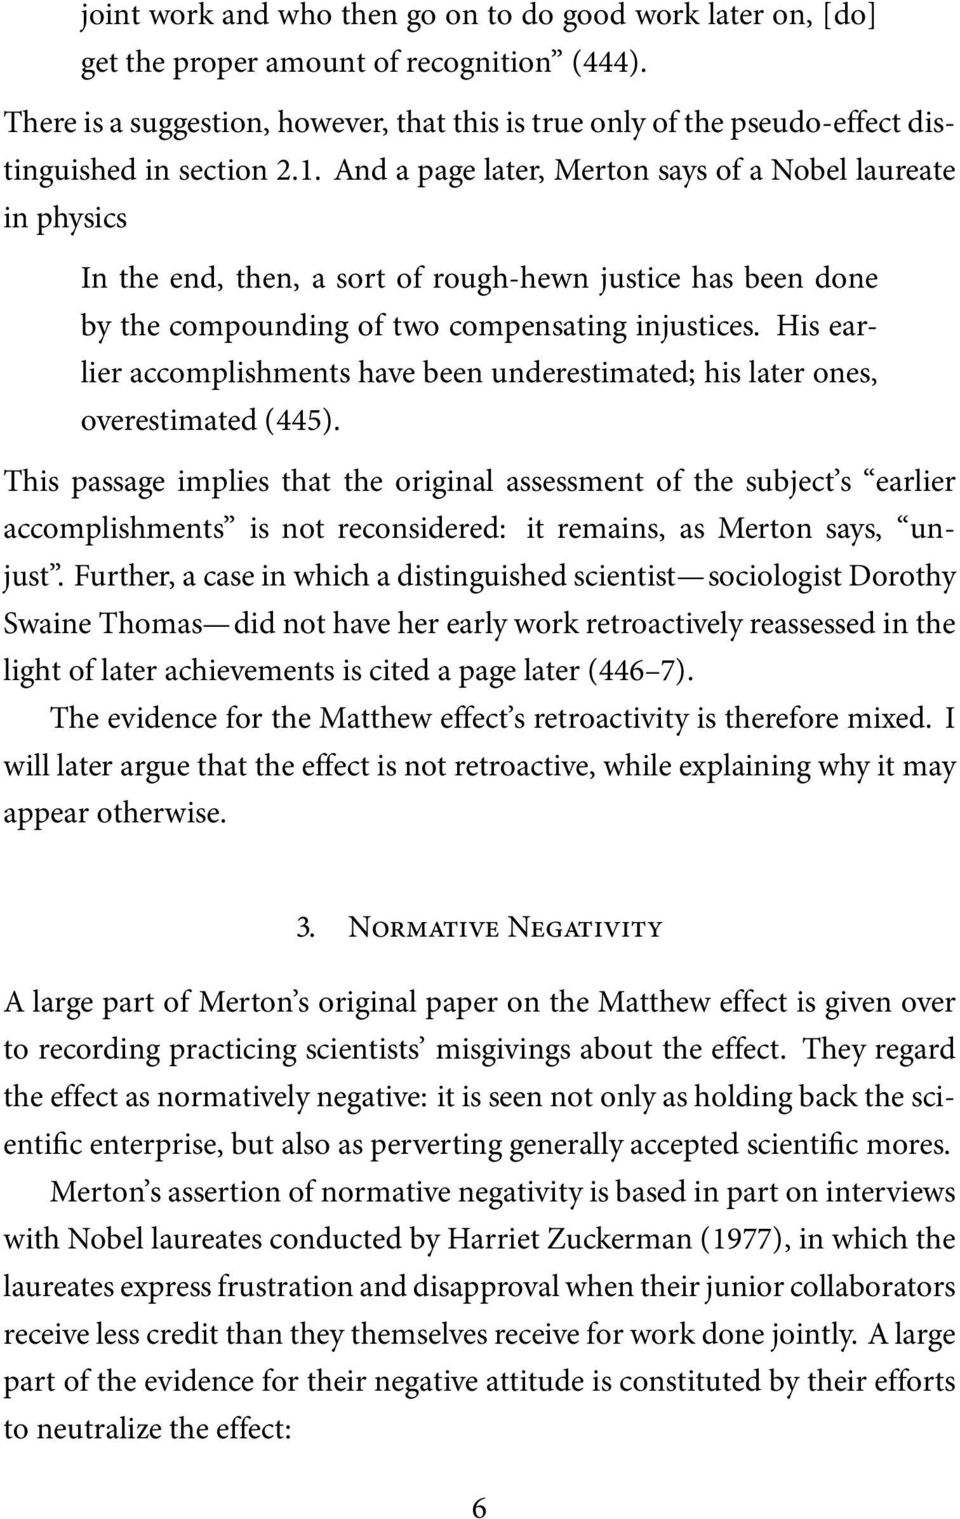 And a page later, Merton says of a Nobel laureate in physics In the end, then, a sort of rough-hewn justice has been done by the compounding of two compensating injustices.